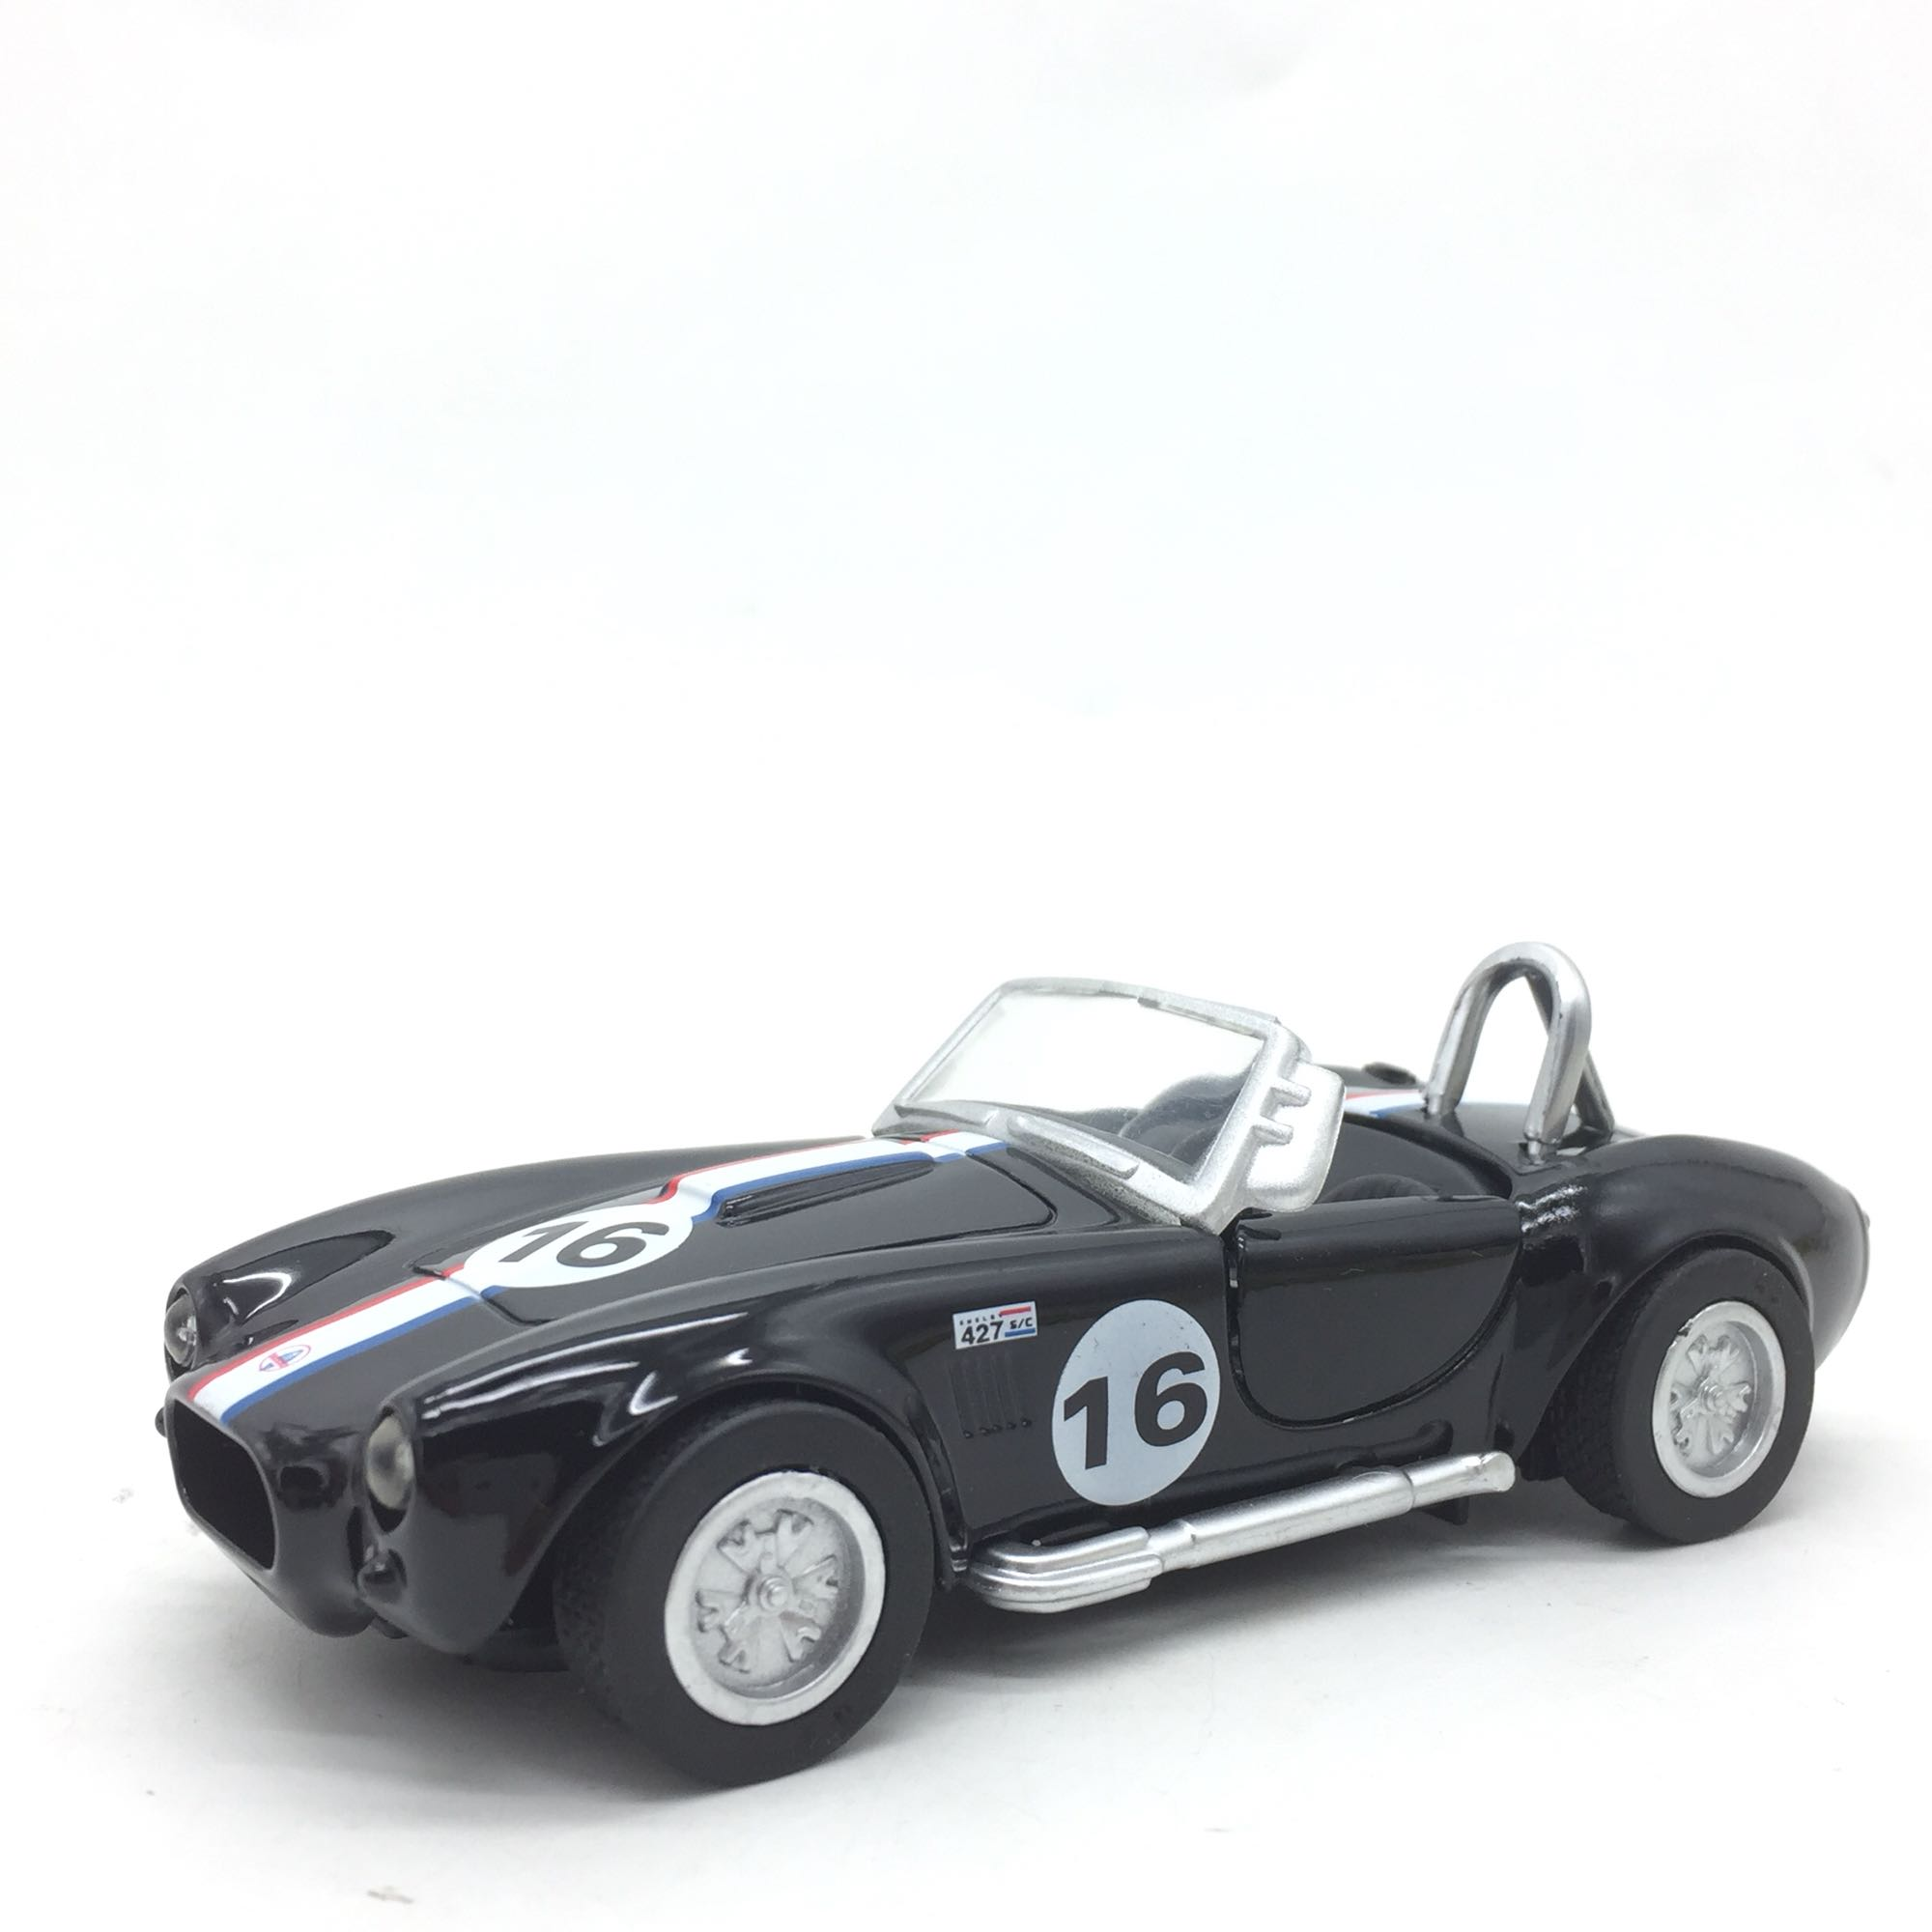 RD 1/32 Scale Racing Car Model Toys Shelby Cobra 427S/C NO.16 Diecast Metal Car Model Toy For Gift,Kids,Collection